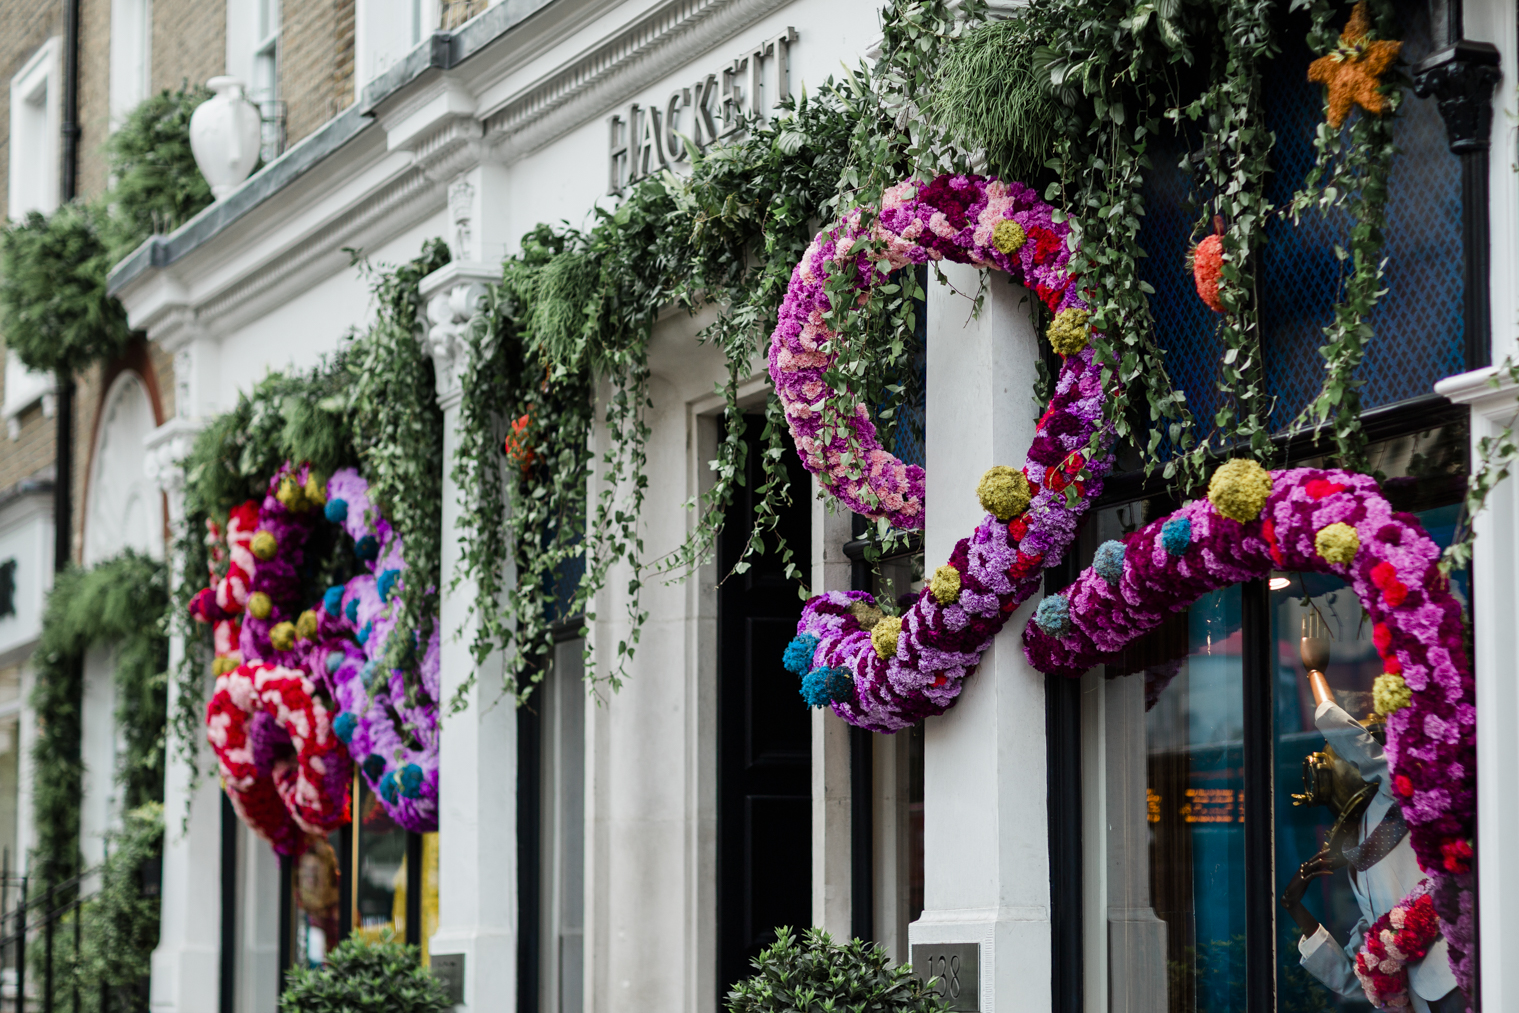 Wildabout for Hackett - Chelsea in Bloom